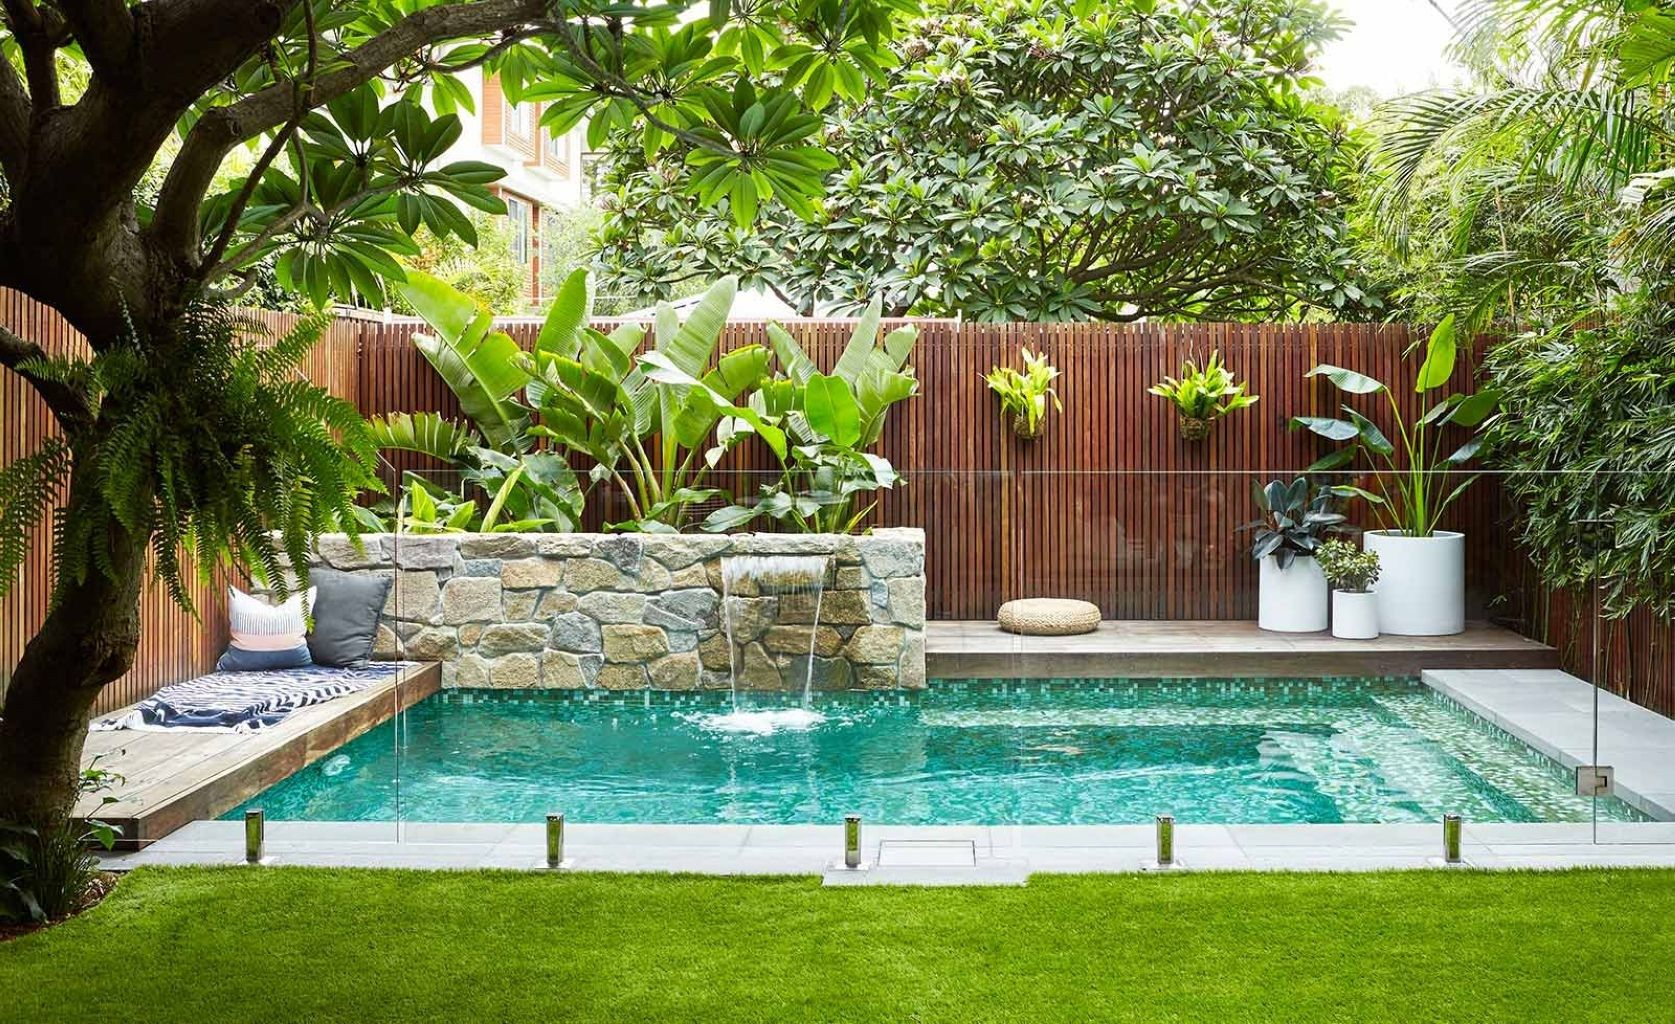 Best Small Pool Ideas For A Small Backyard 35 - TOPARCHITECTURE ...